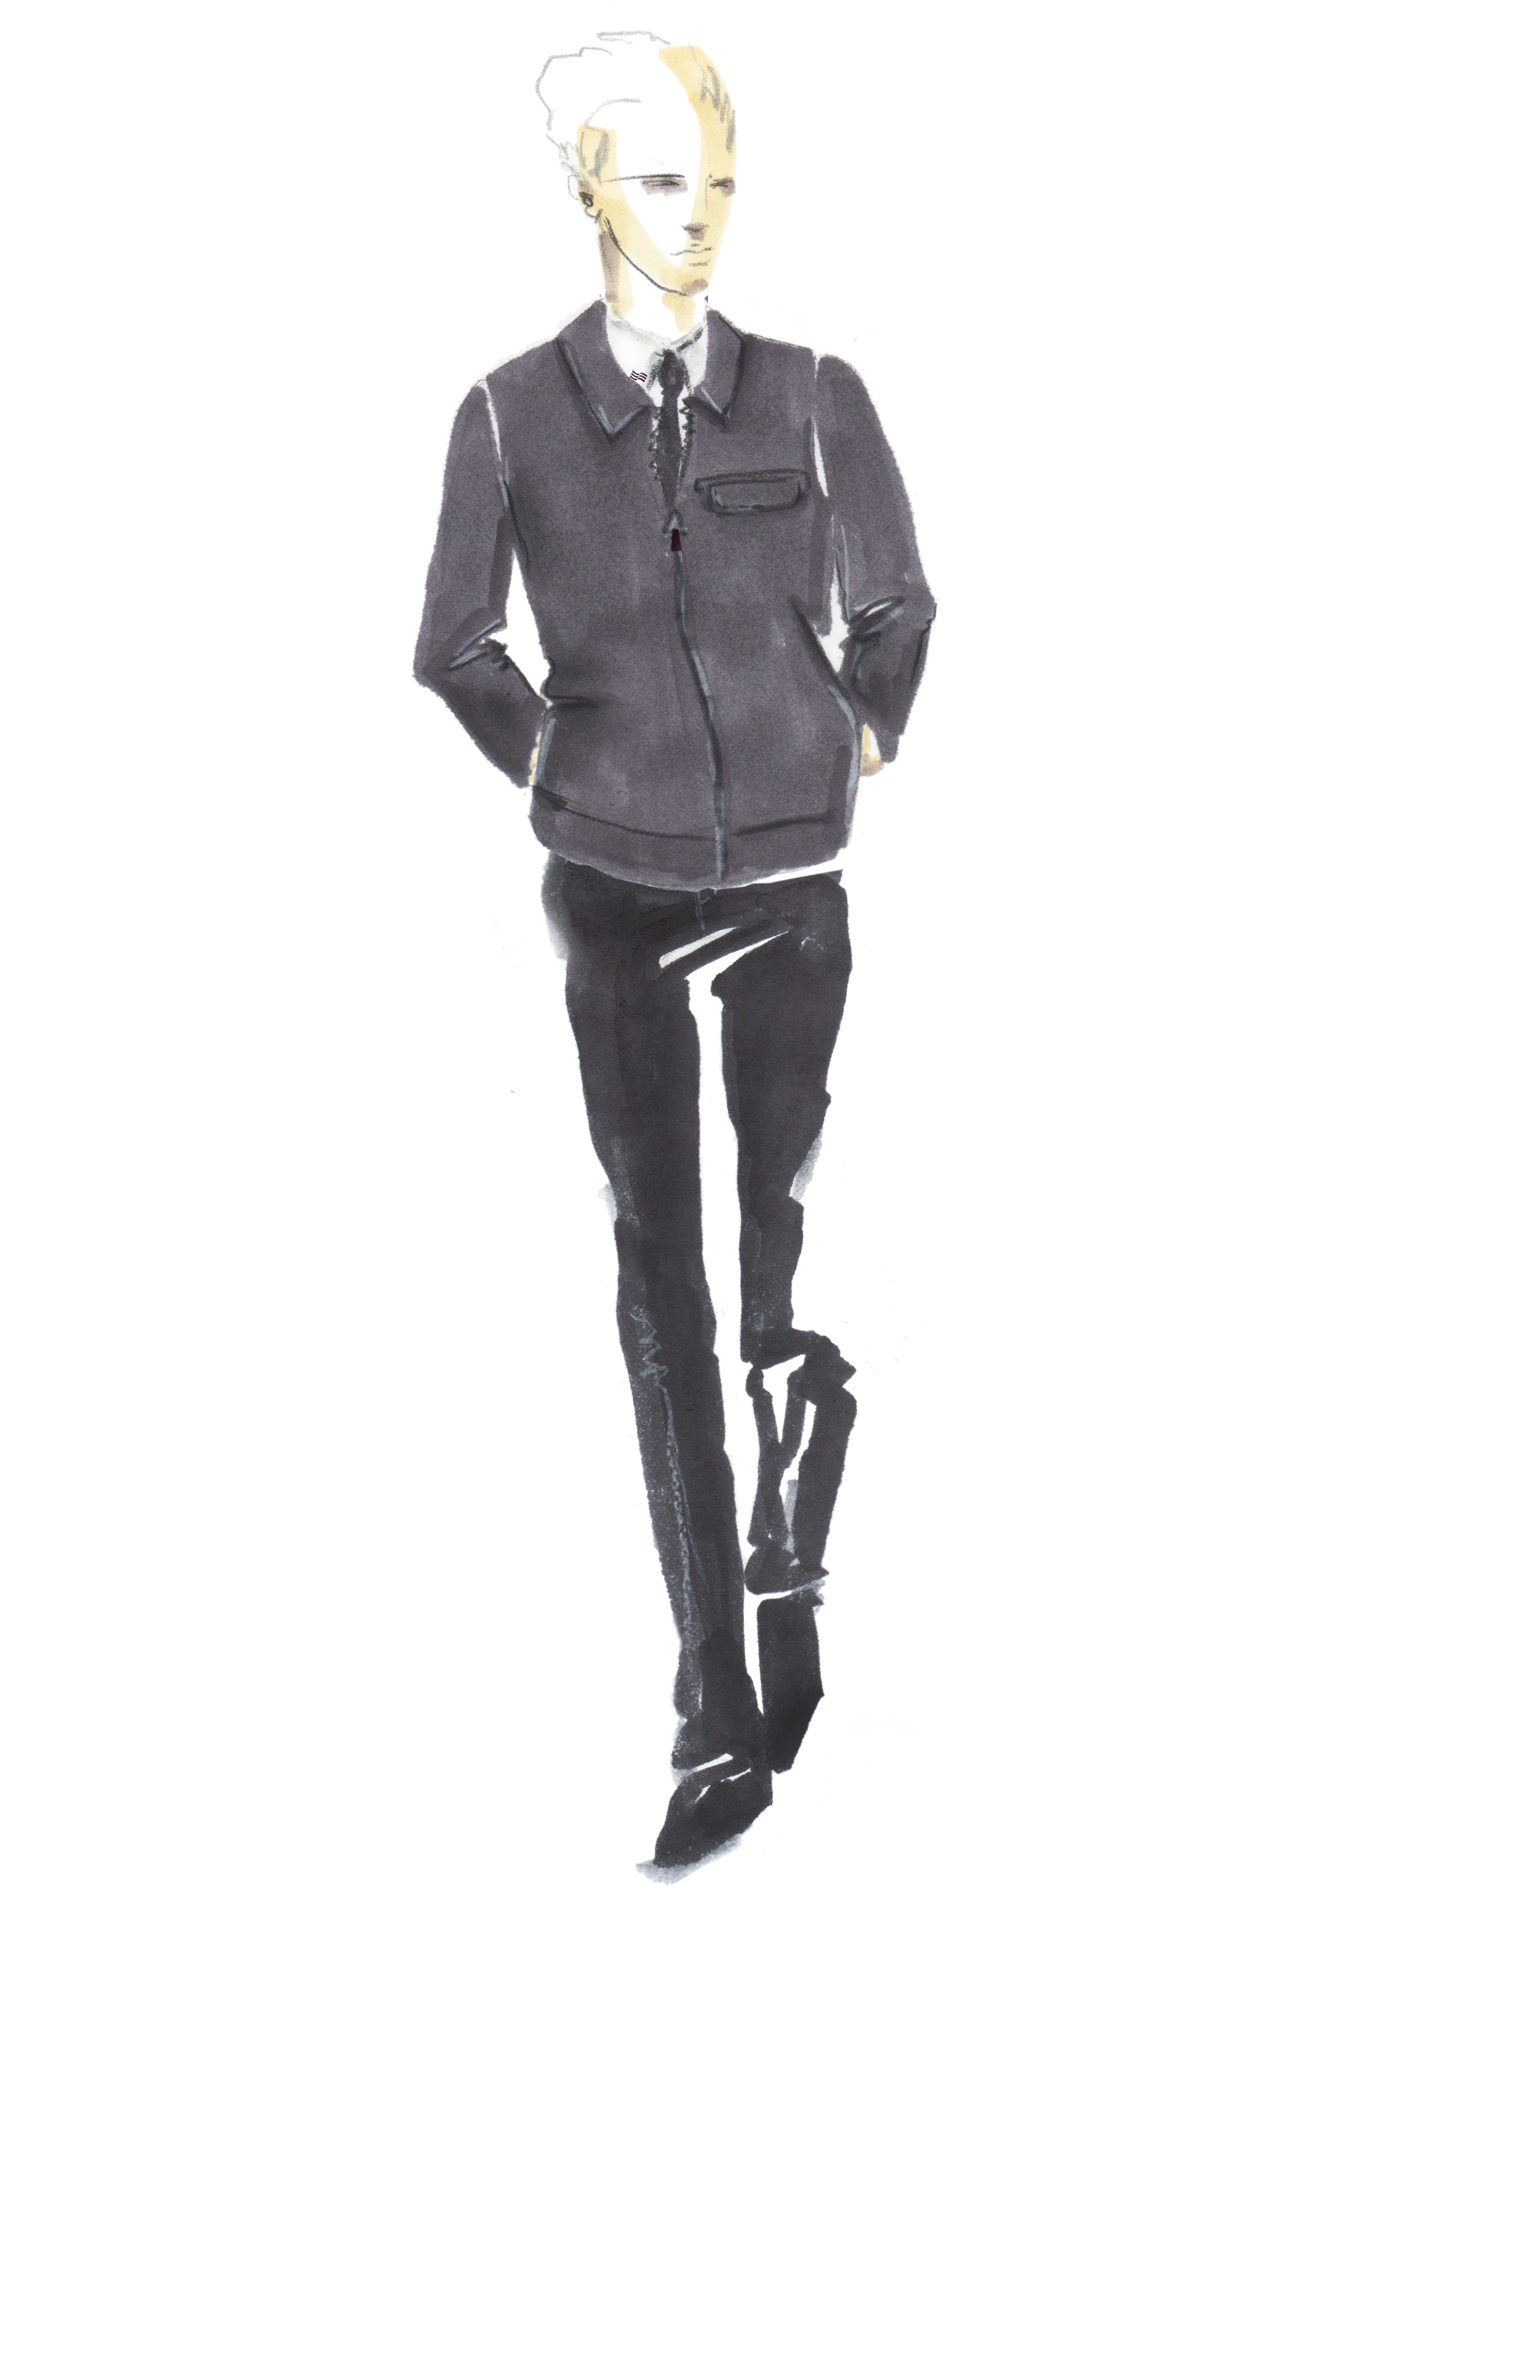 A Timo Weiland look from the uniform line.